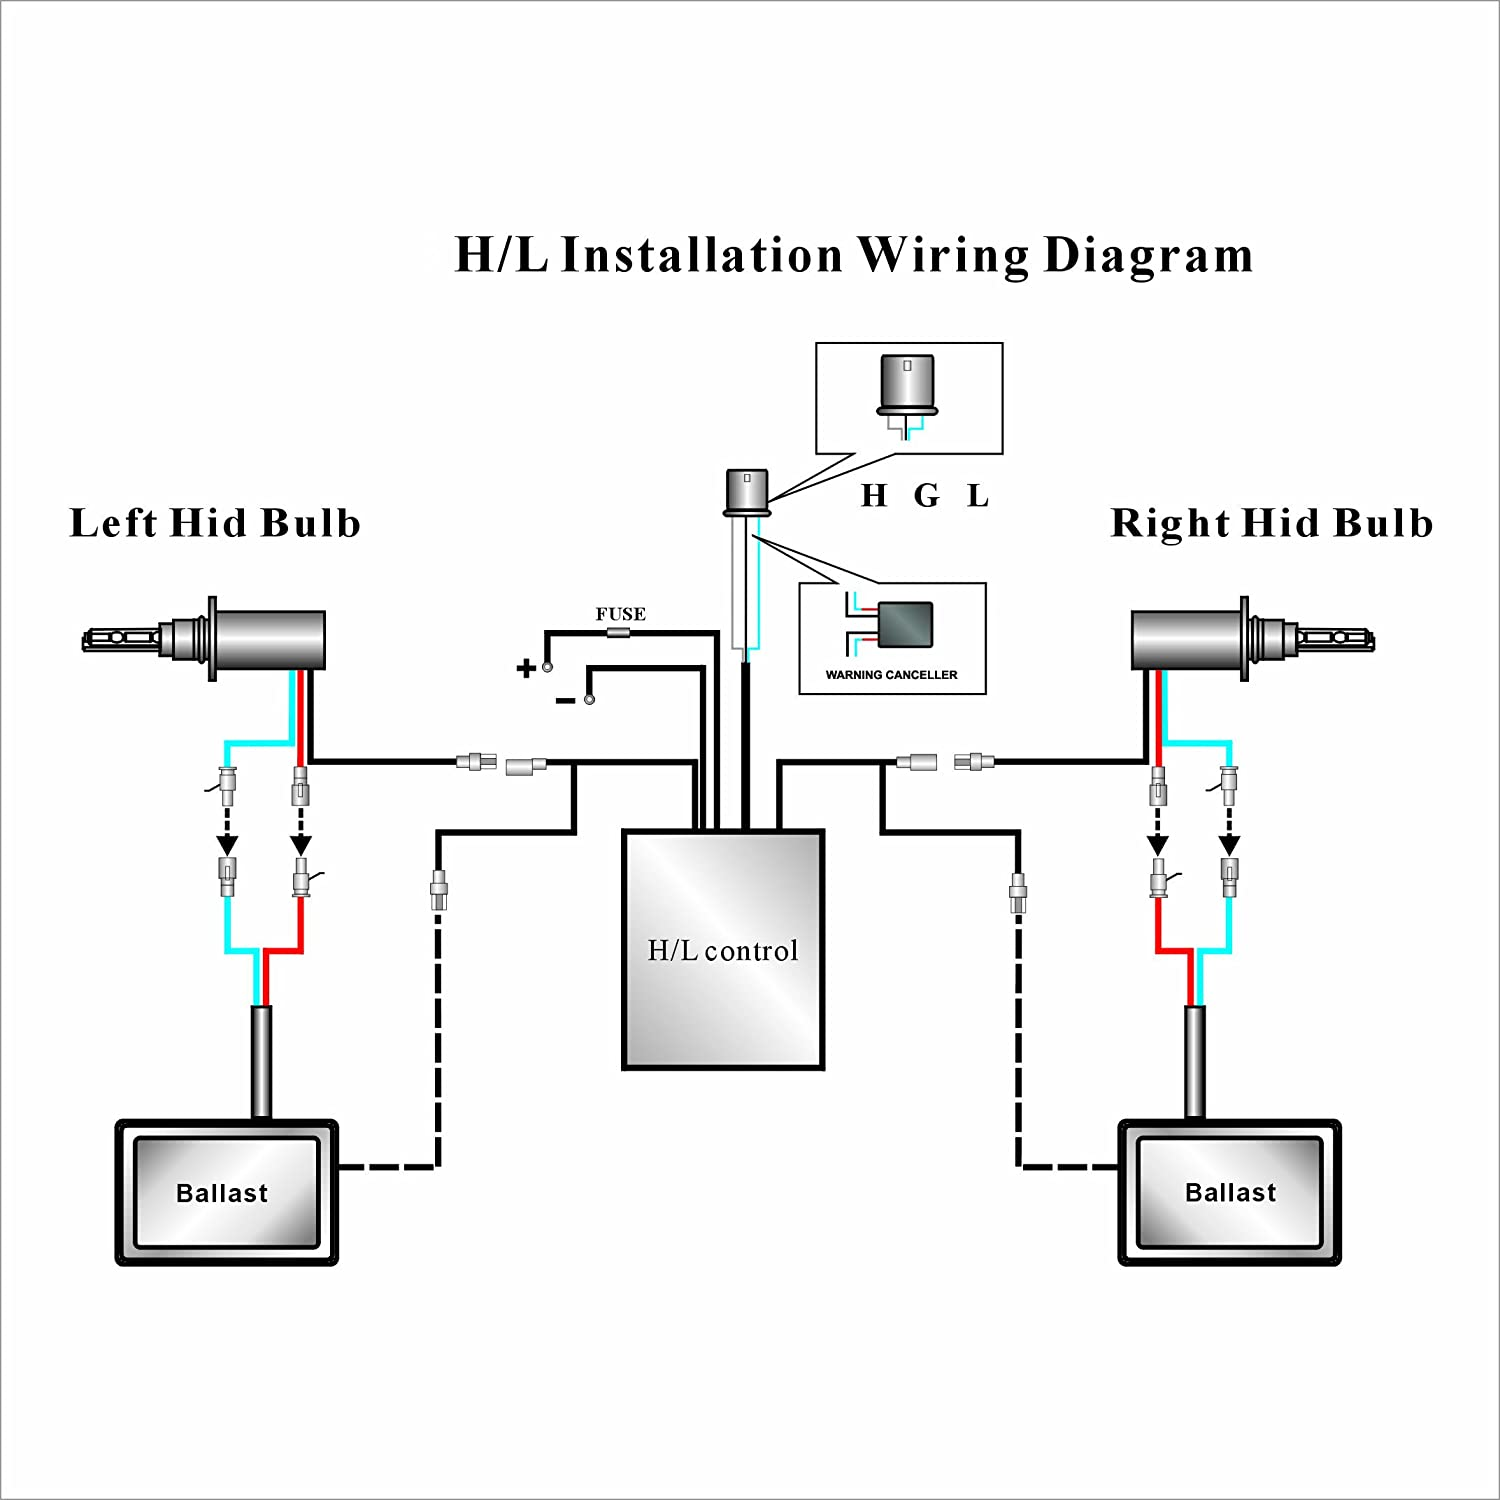 Hid Light Ballast Wiring Diagram Internal Diagrams Chevy Resistor H4 21 Images D1s High Pressure